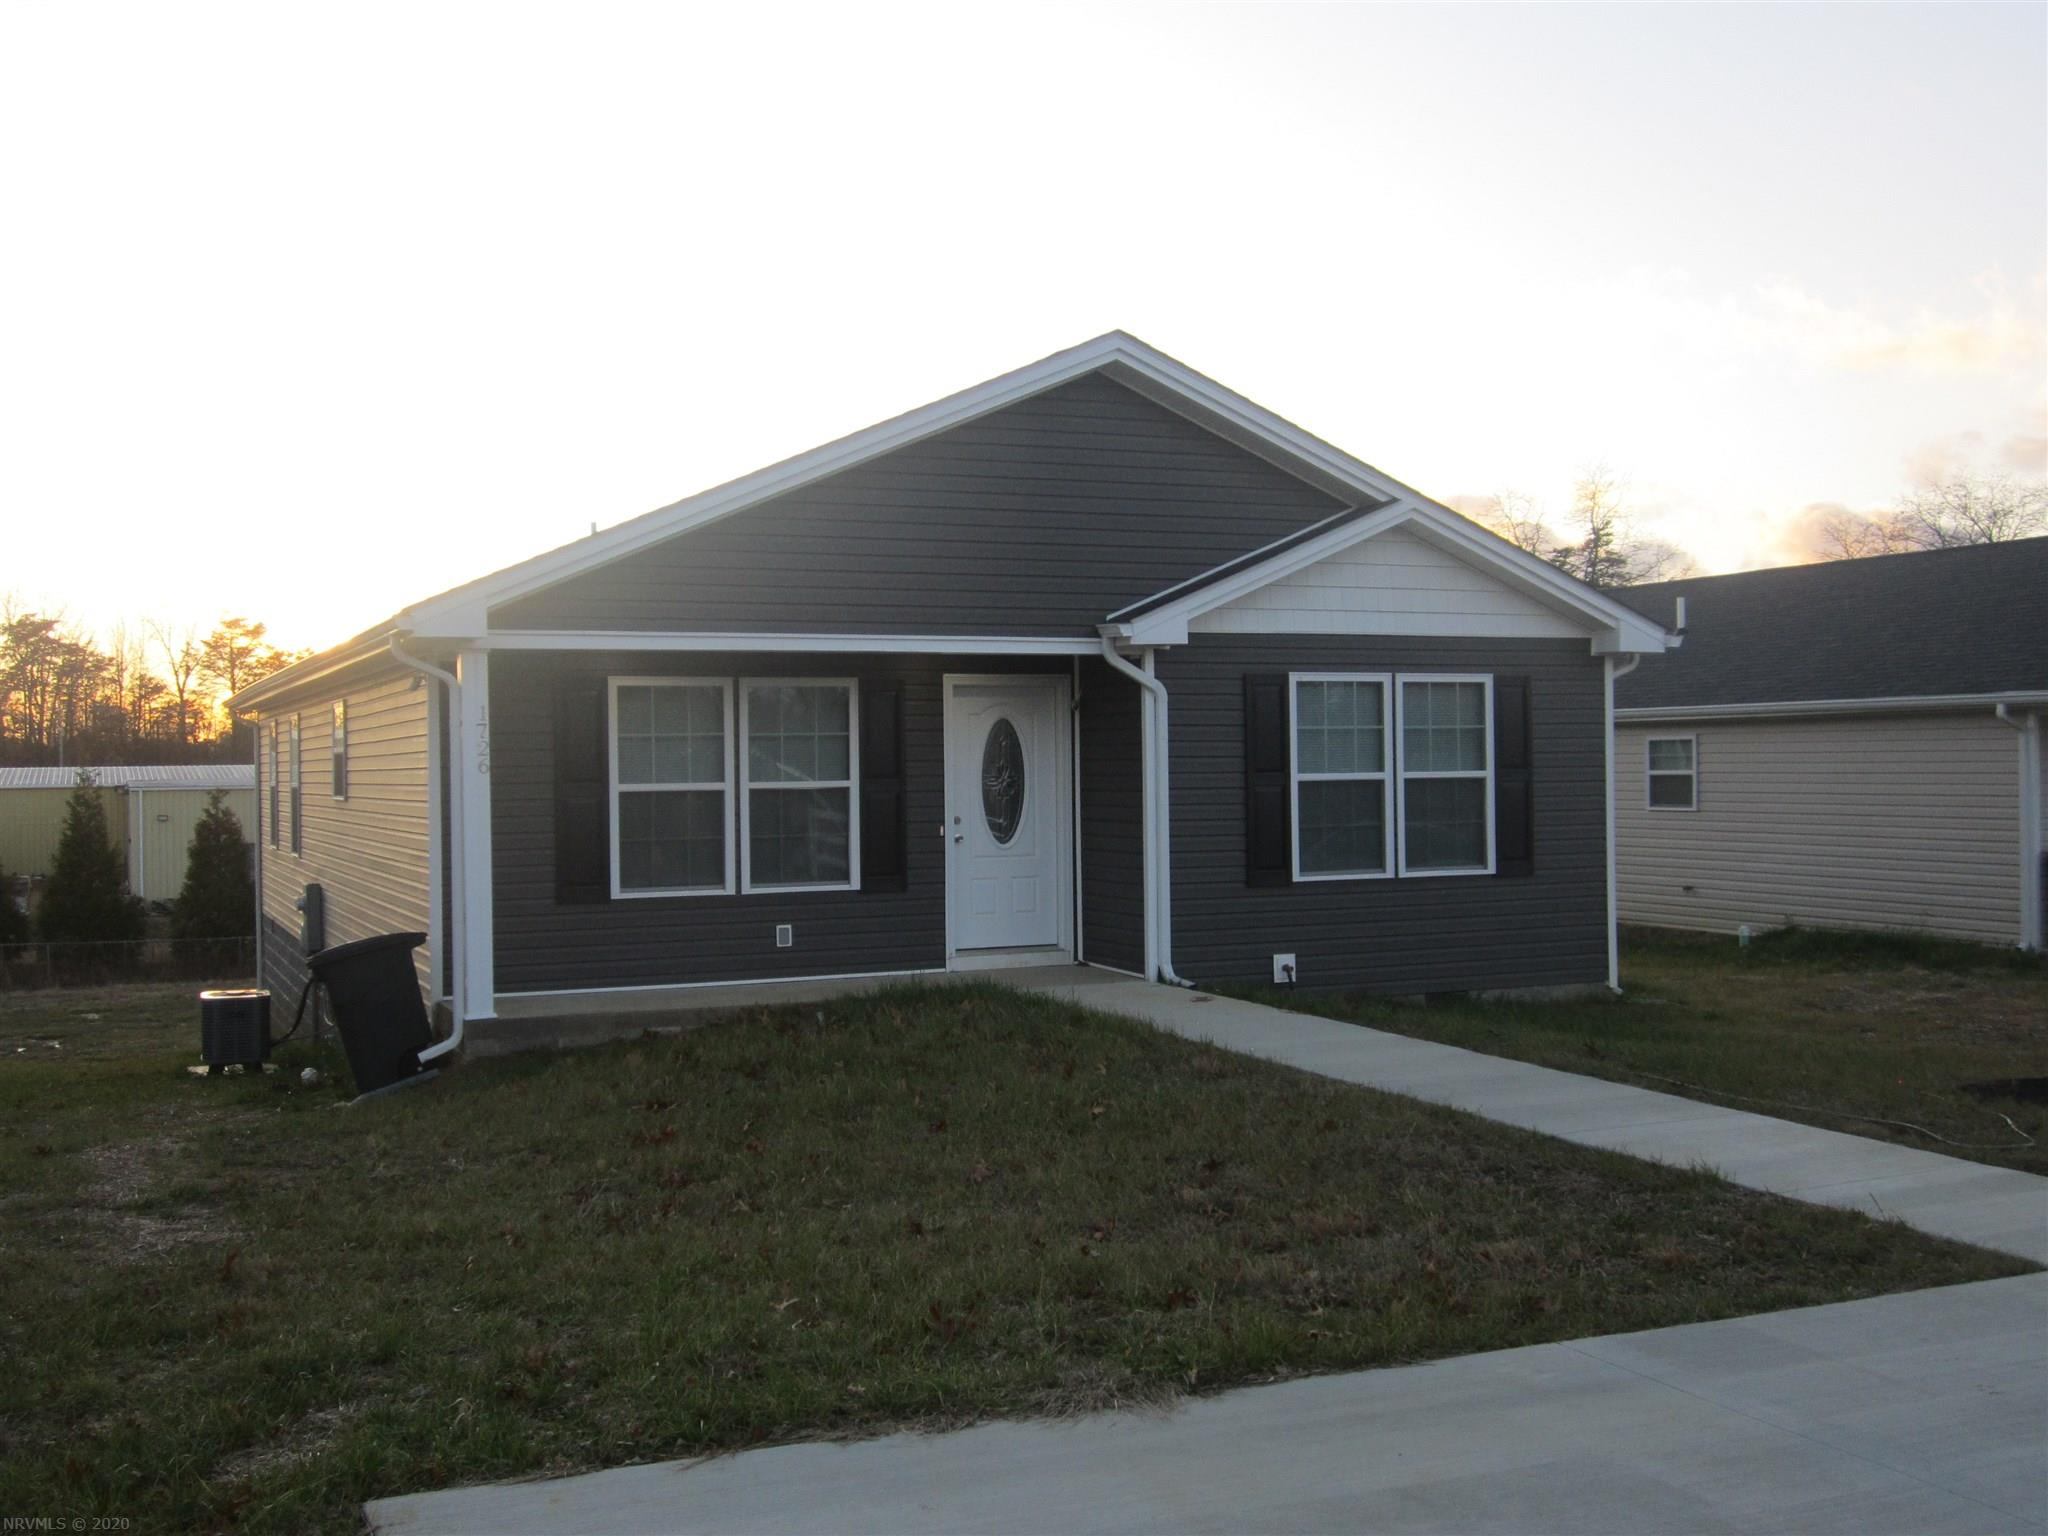 New Construction!! Beautiful 3 Bedroom 2 Bath Home in a great Neighborhood. This home offers a modern open Floor Plan with 1,500 square feet of Finished living space. Upgraded Flooring and light fixtures. The Home also offers a Heat Pump. Outside you have a Double Paved Driveway and a Covered Porch.